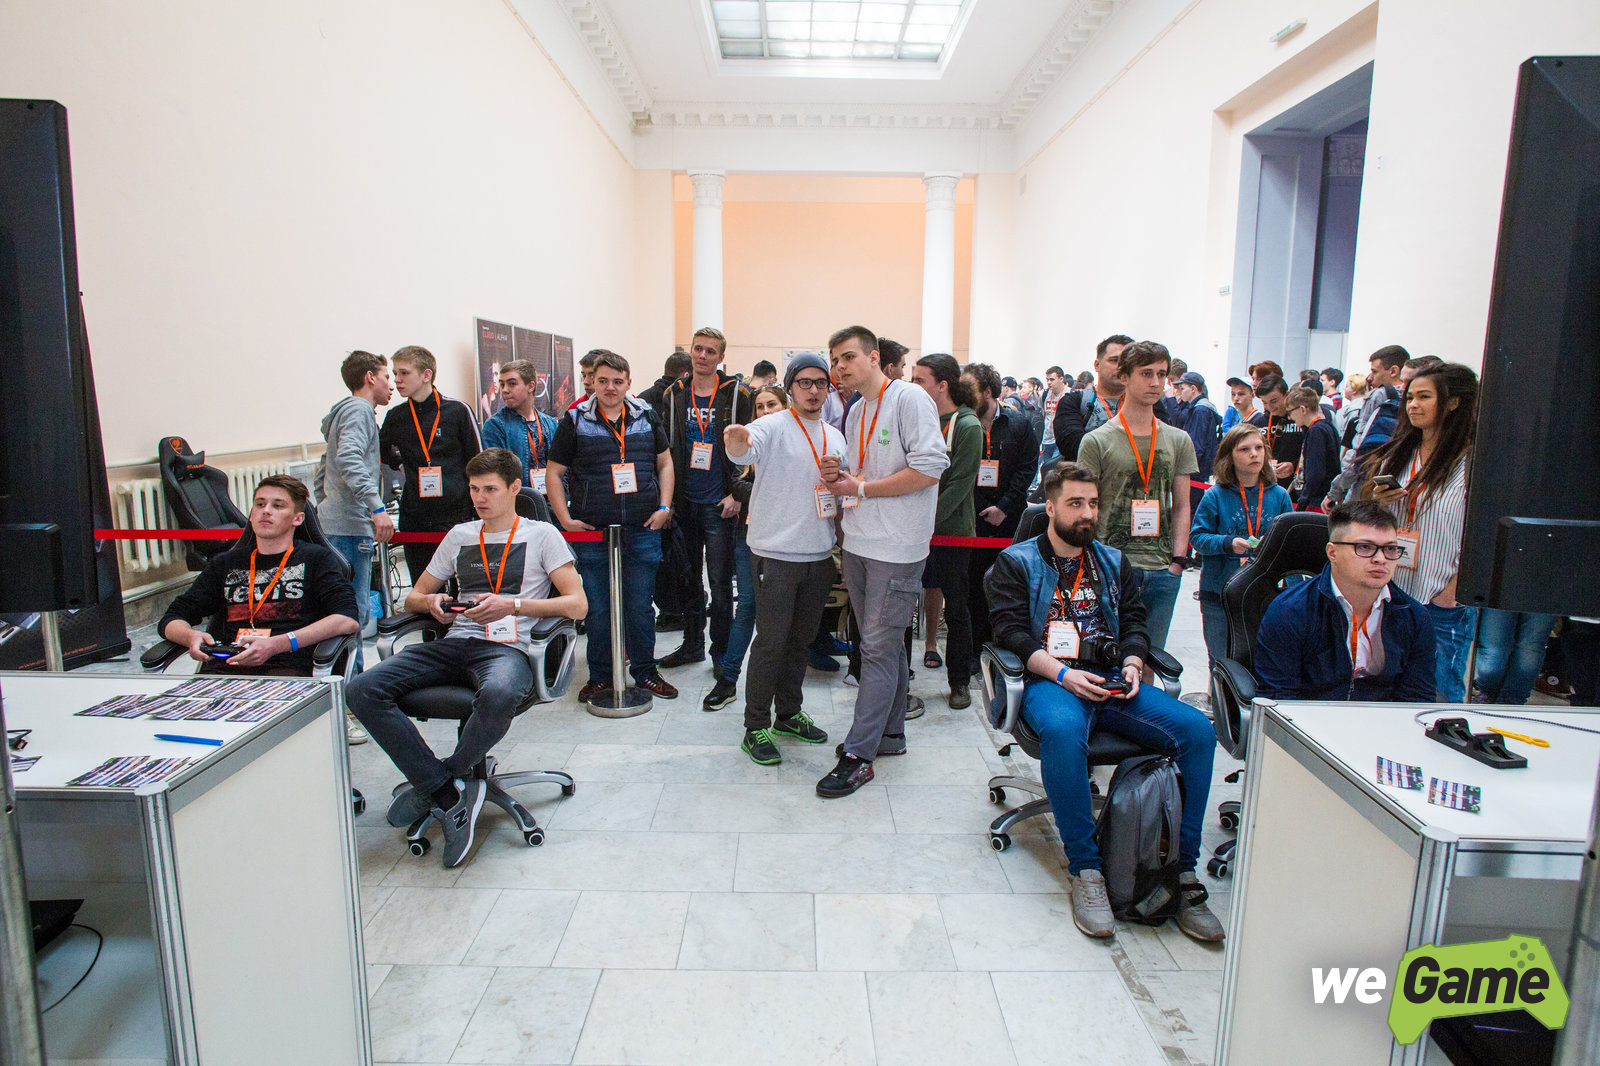 WEGAME 4.0 brought together the biggest meetup of gamers and geeks in Ukraine - 4